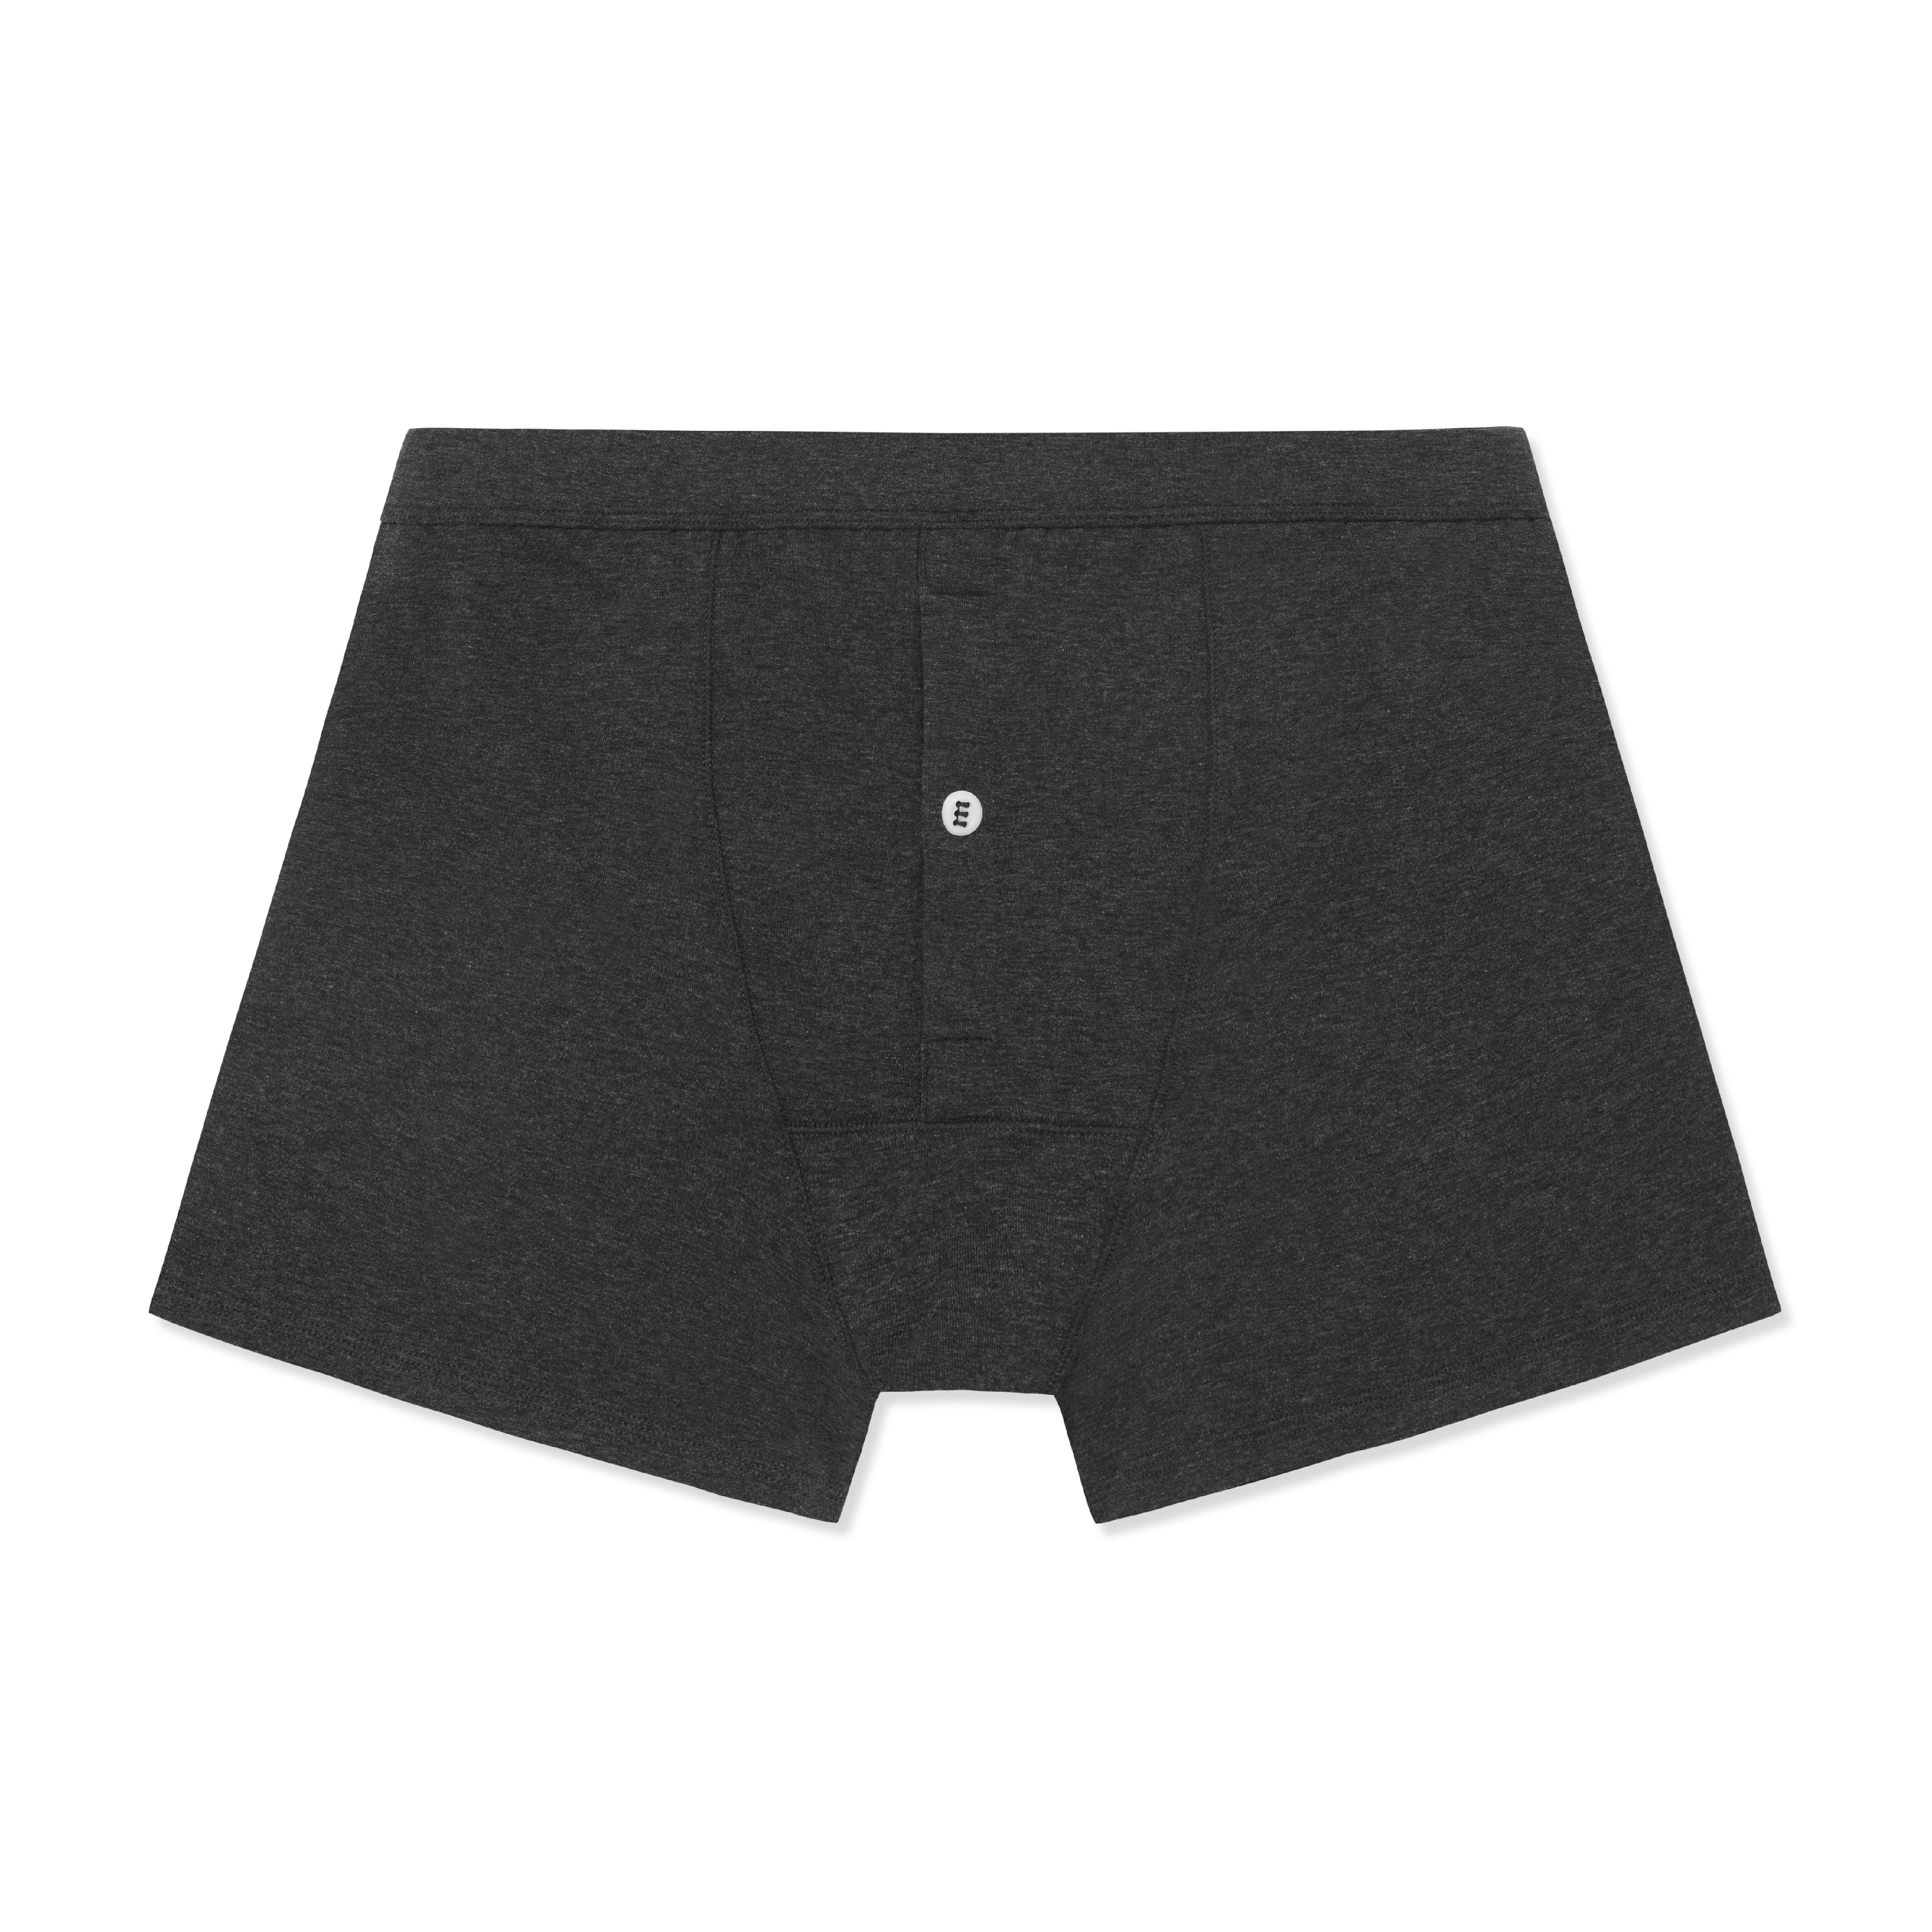 3 Pack Boxer Brief - Mix Set 2 - Hamilton and Hare Ltd